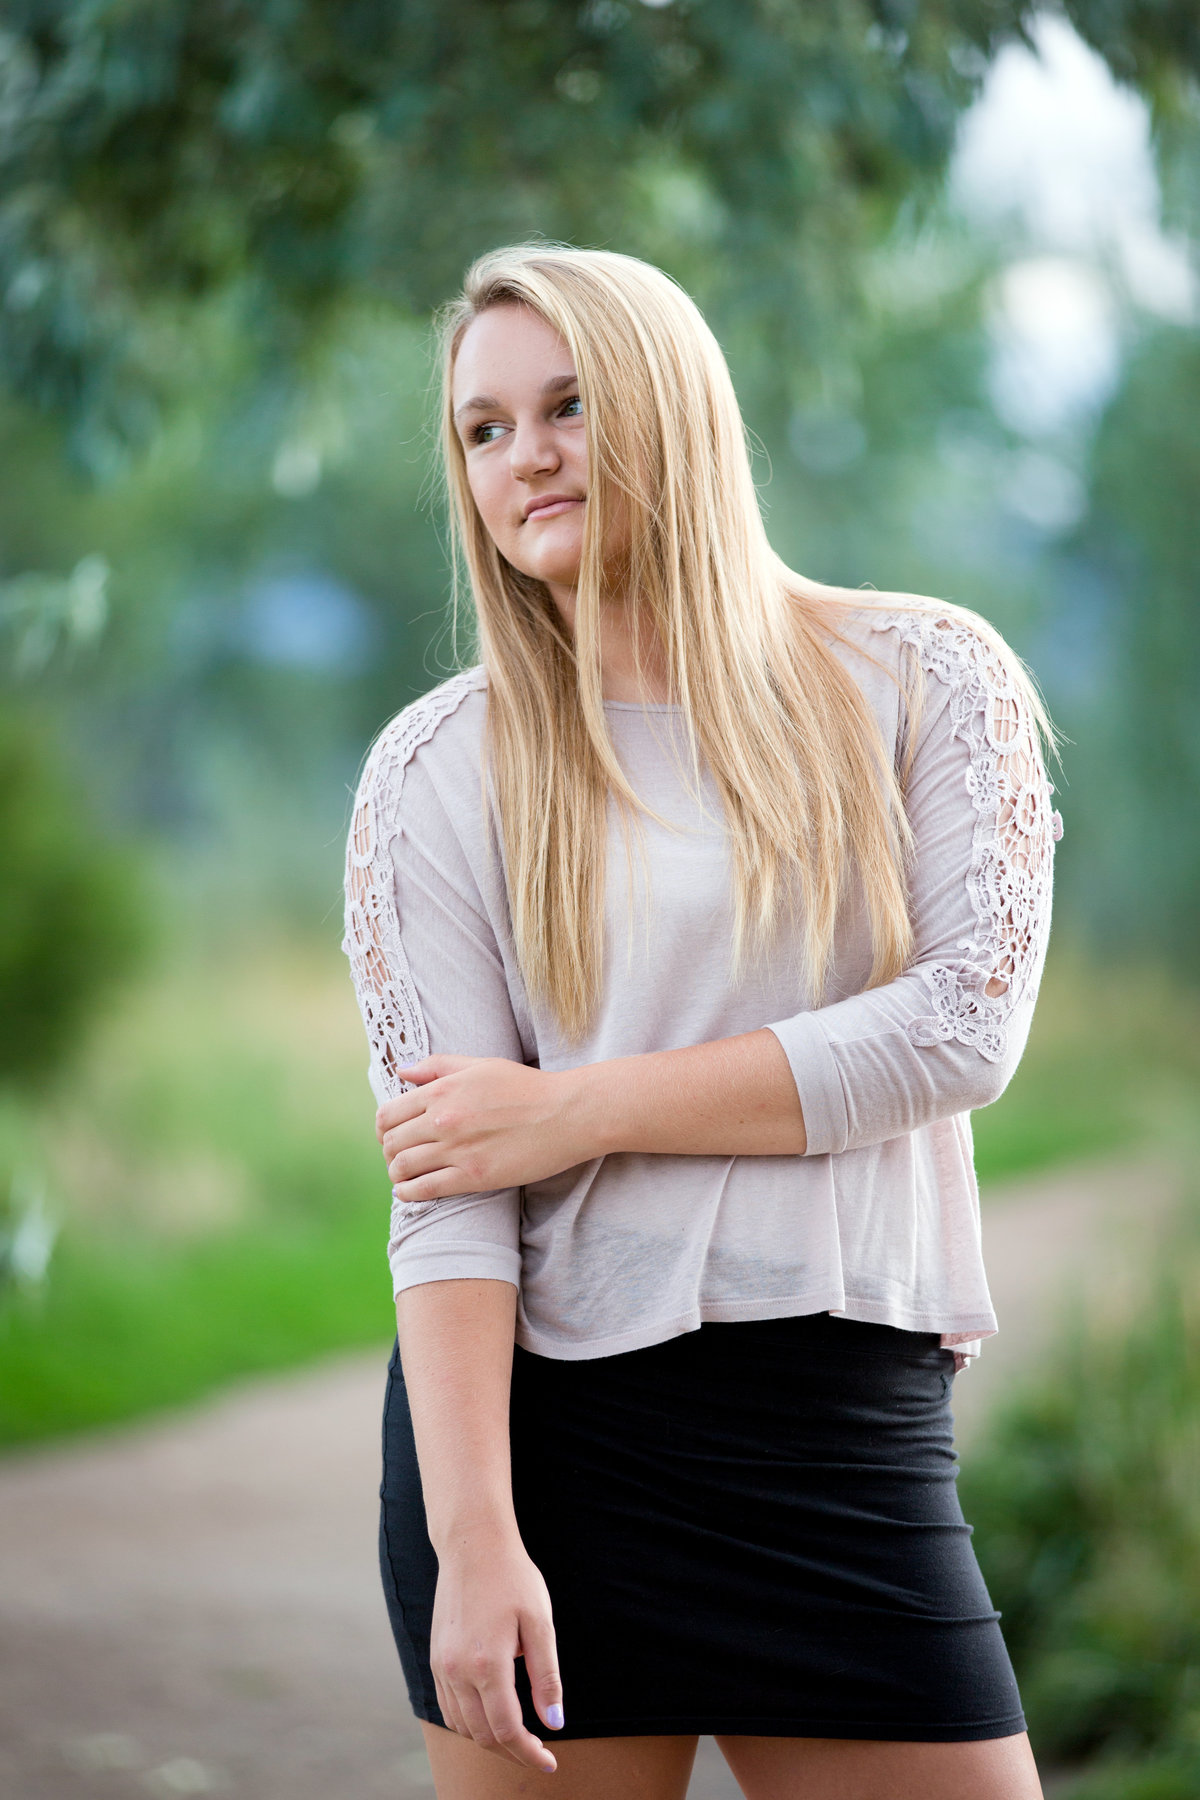 longmont-senior-portrait-photography